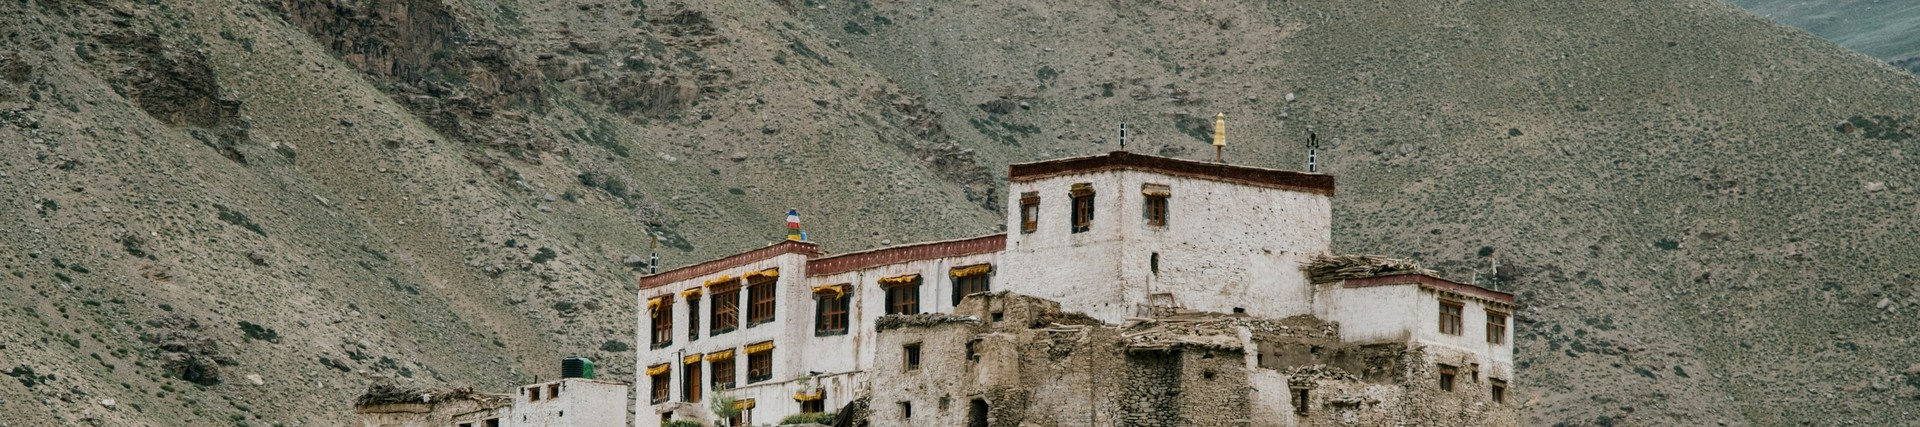 Picture of a Tibetan monastery, by Julia Volk from Pexels